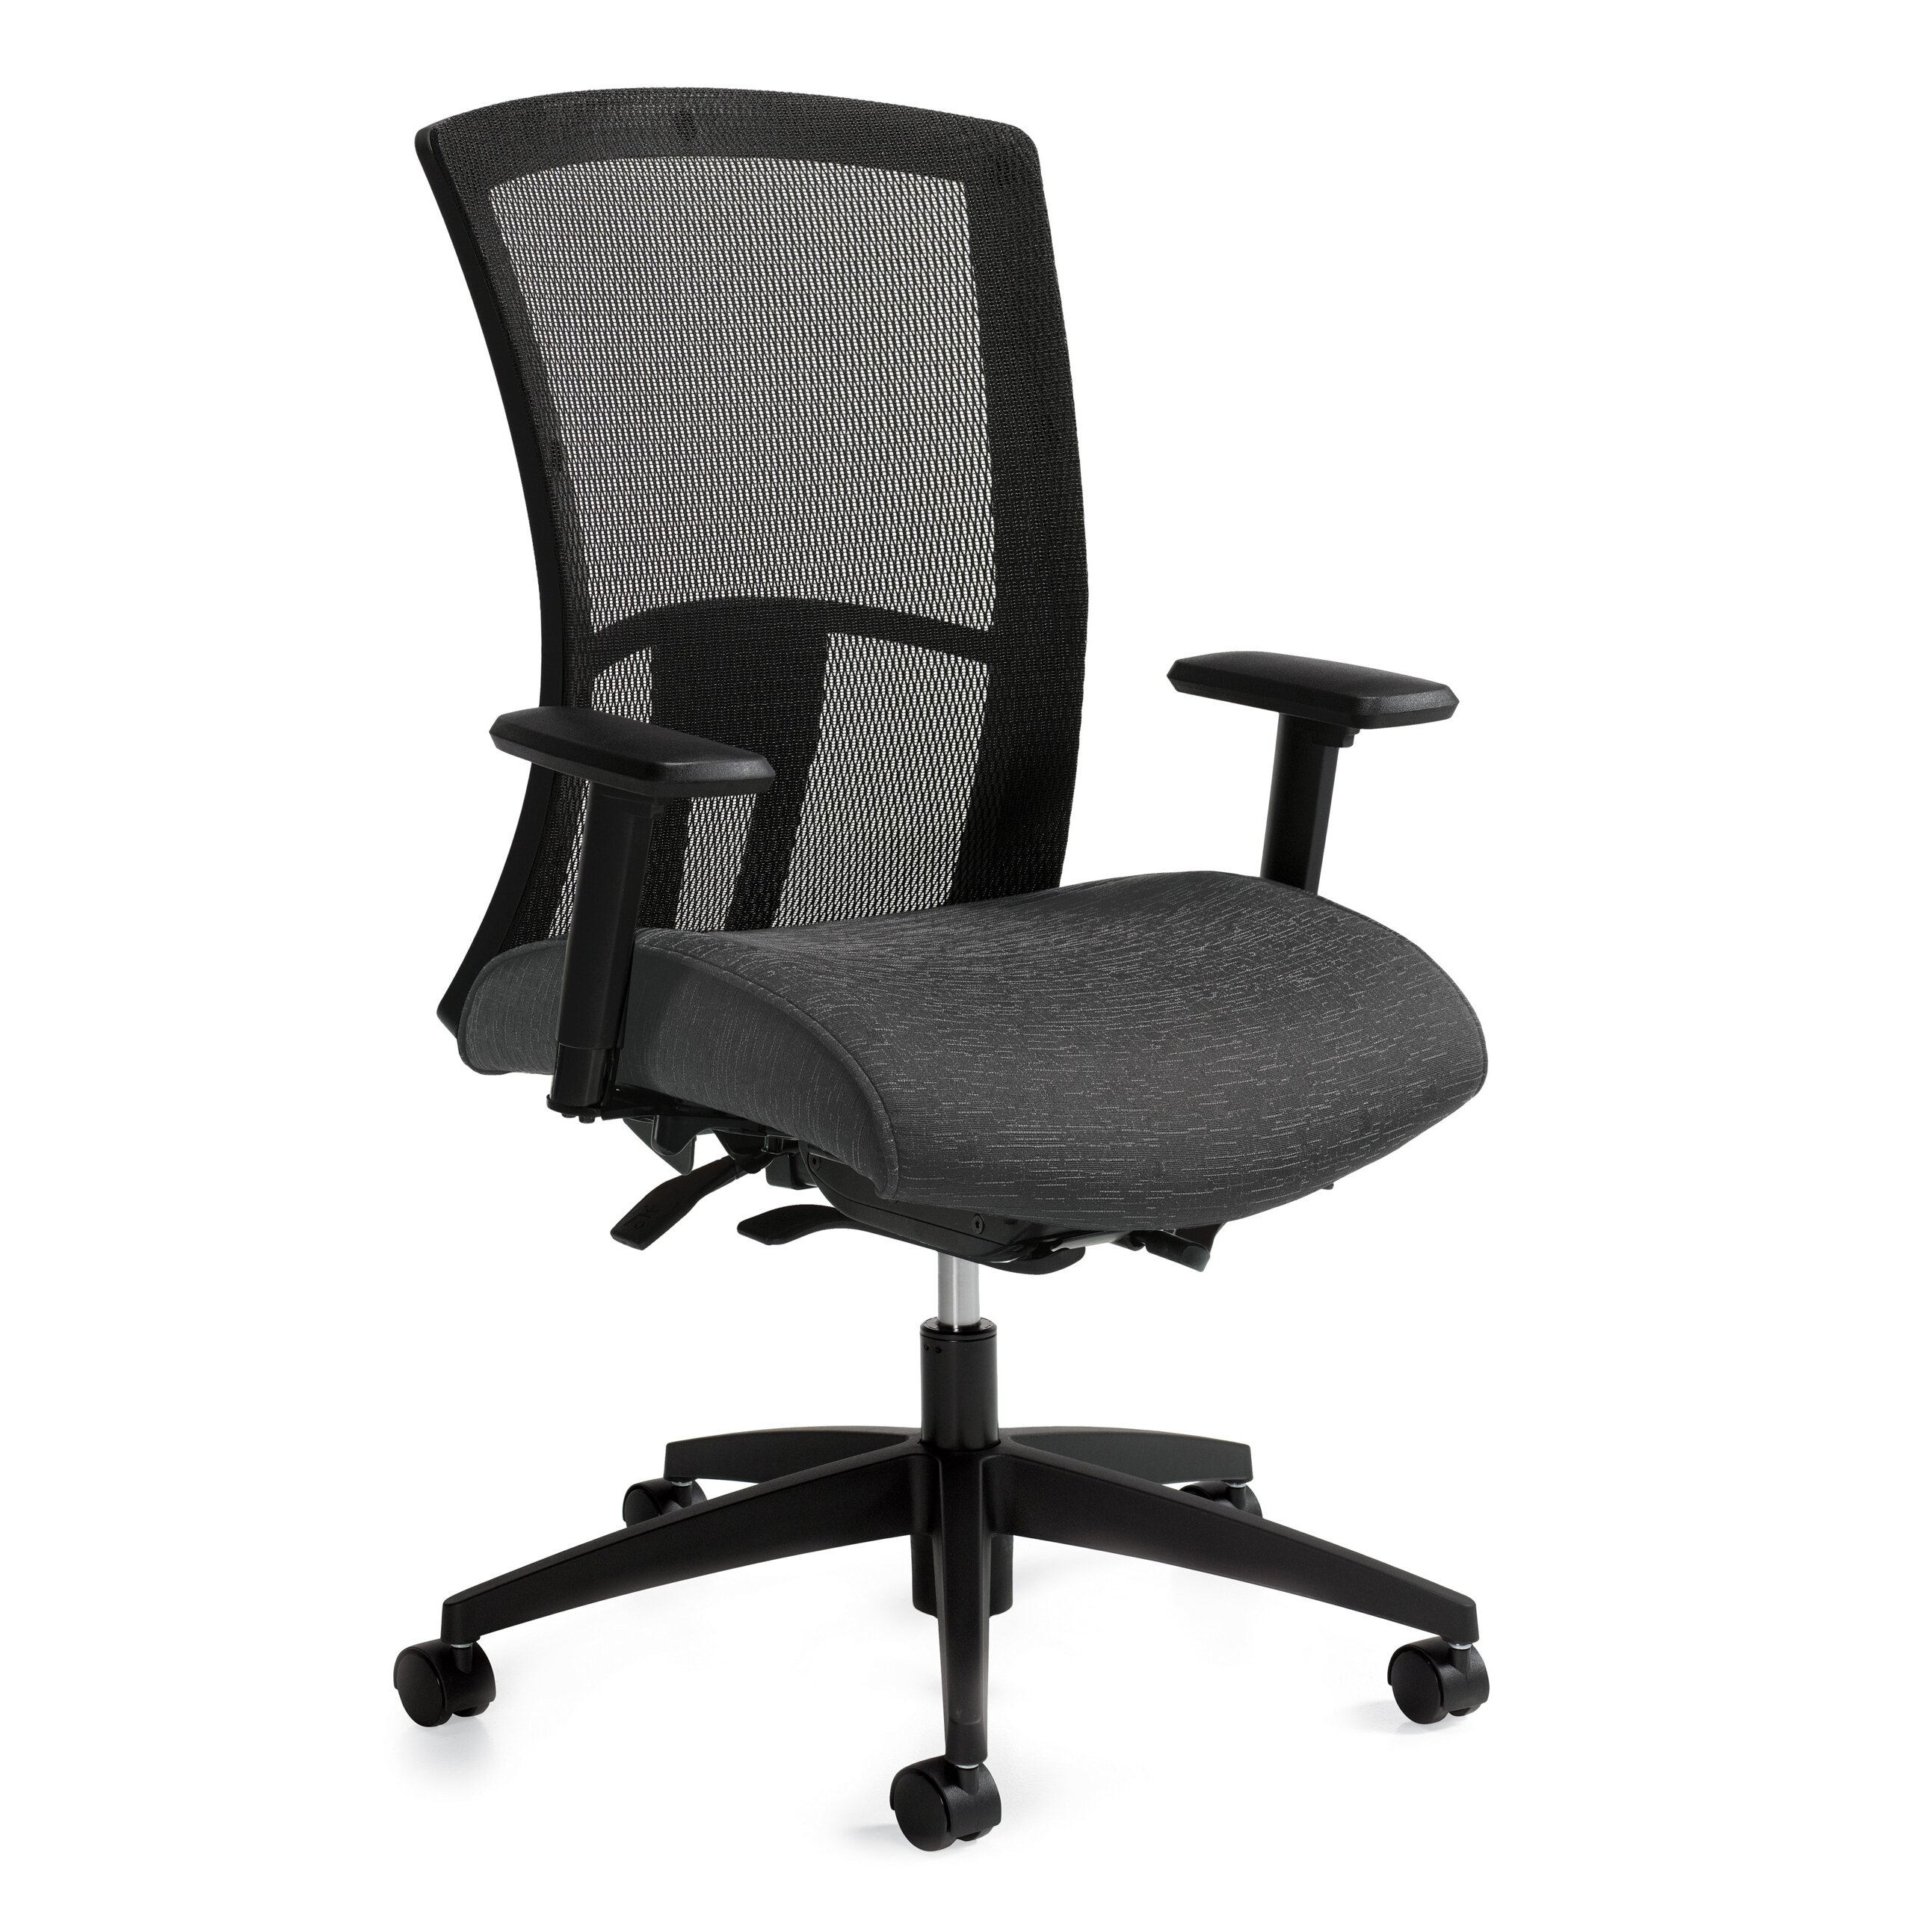 office max desk chairs with Global Total Office Vion Mesh Desk Chair Glob1025 on Modern Furniture Modern Media Cabi s Contemporary Furniture Modloft Gramercy also Fold Down Wall Mount Shelf Wall Mounted Folding Desk With Folding With Regard To Wall Mounted Folding Desk additionally Global Total Office Vion Mesh Desk Chair GLOB1025 additionally e Arredare La Camera Da Letto Arredare Casa further Watch.